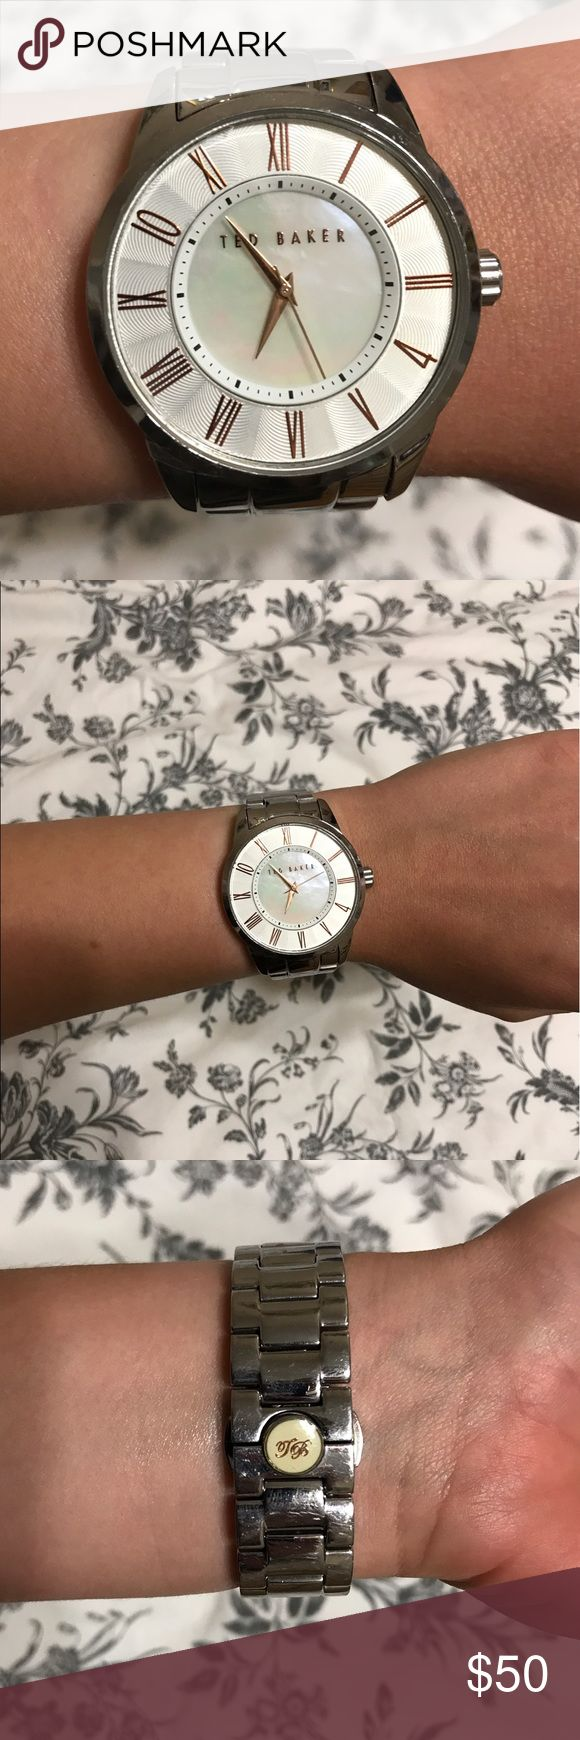 Ted Baker Silver Watch Ted Baker watch in excellent condition. Works perfectly. Ted Baker Accessories Watches